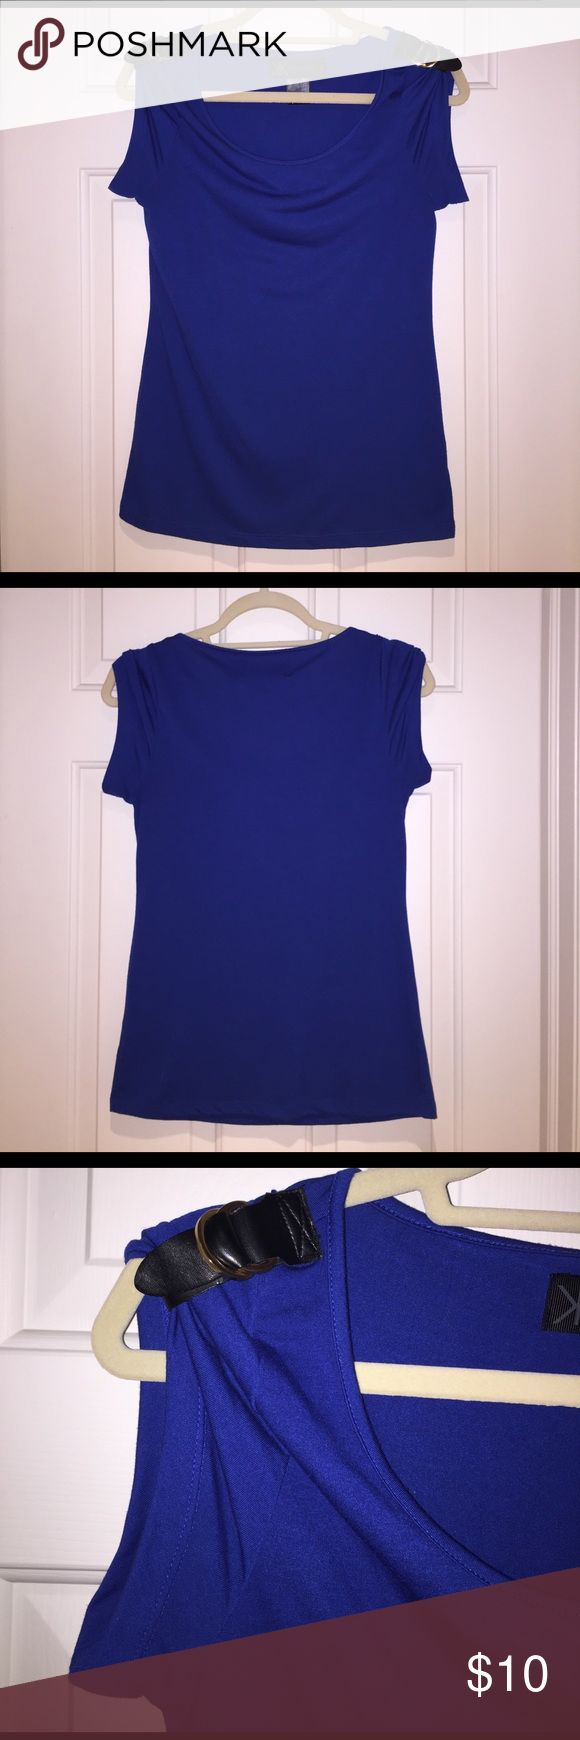 Kardashian Kollection Royal Blue Buckle Accent Top Great condition - Royal blue color with black buckles on shoulder - 62% Polyester, 38% Rayon - Pairs perfectly with a nice pair jeans/black pants Kardashian Kollection Tops